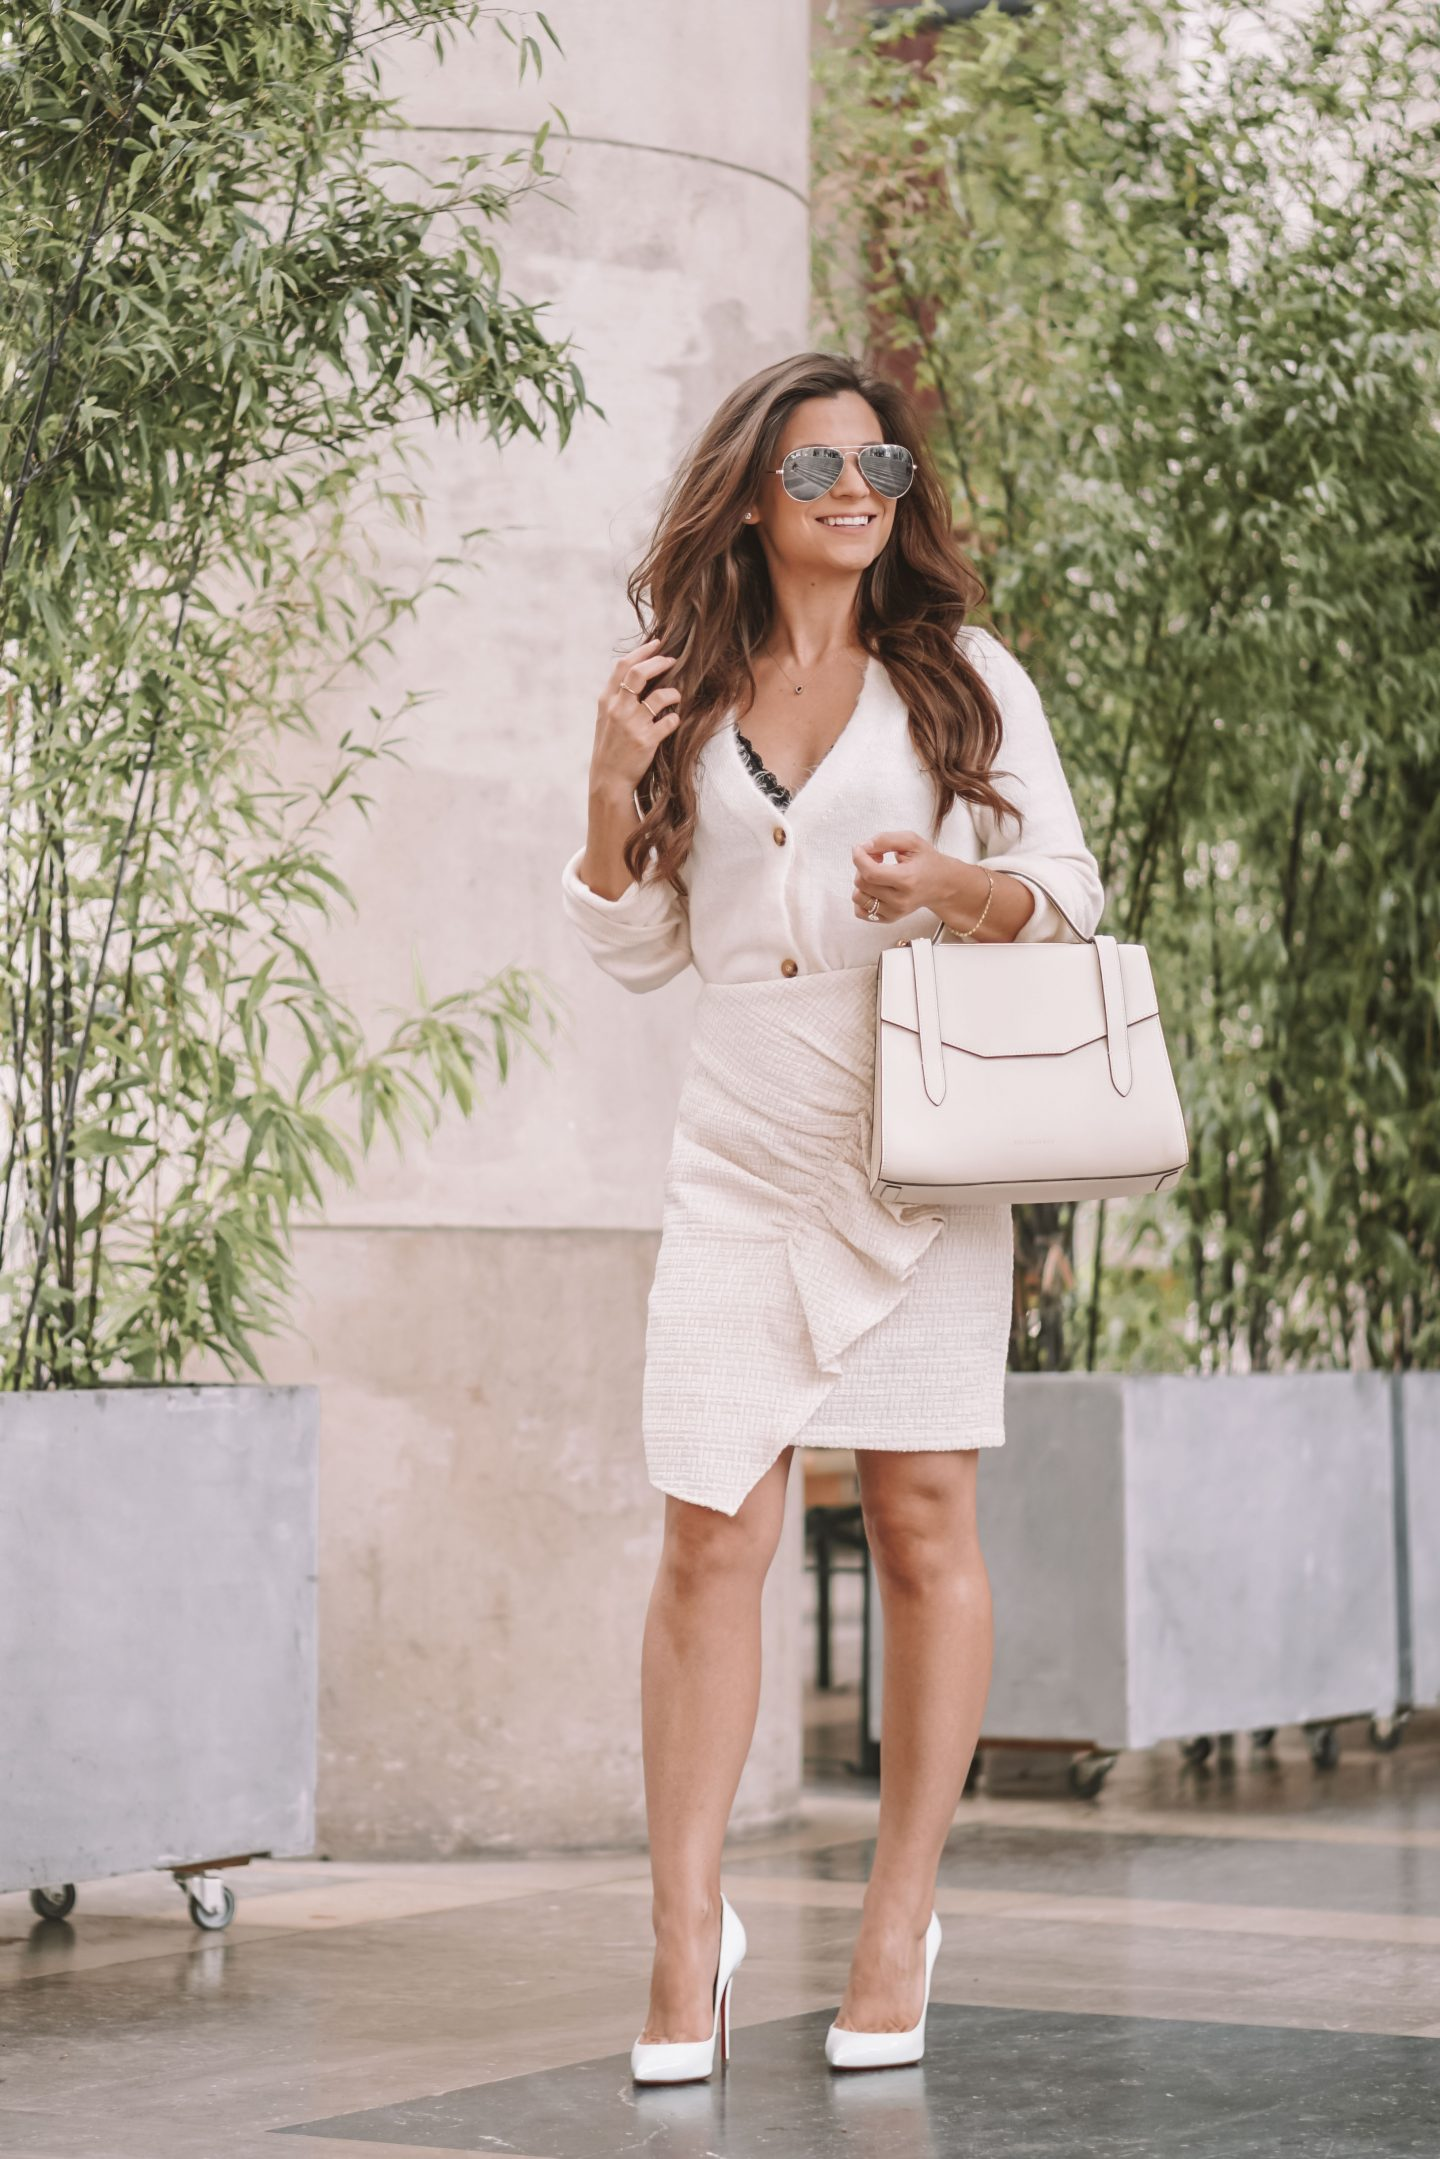 Diane Coletta petite in paris wears an all white outfit